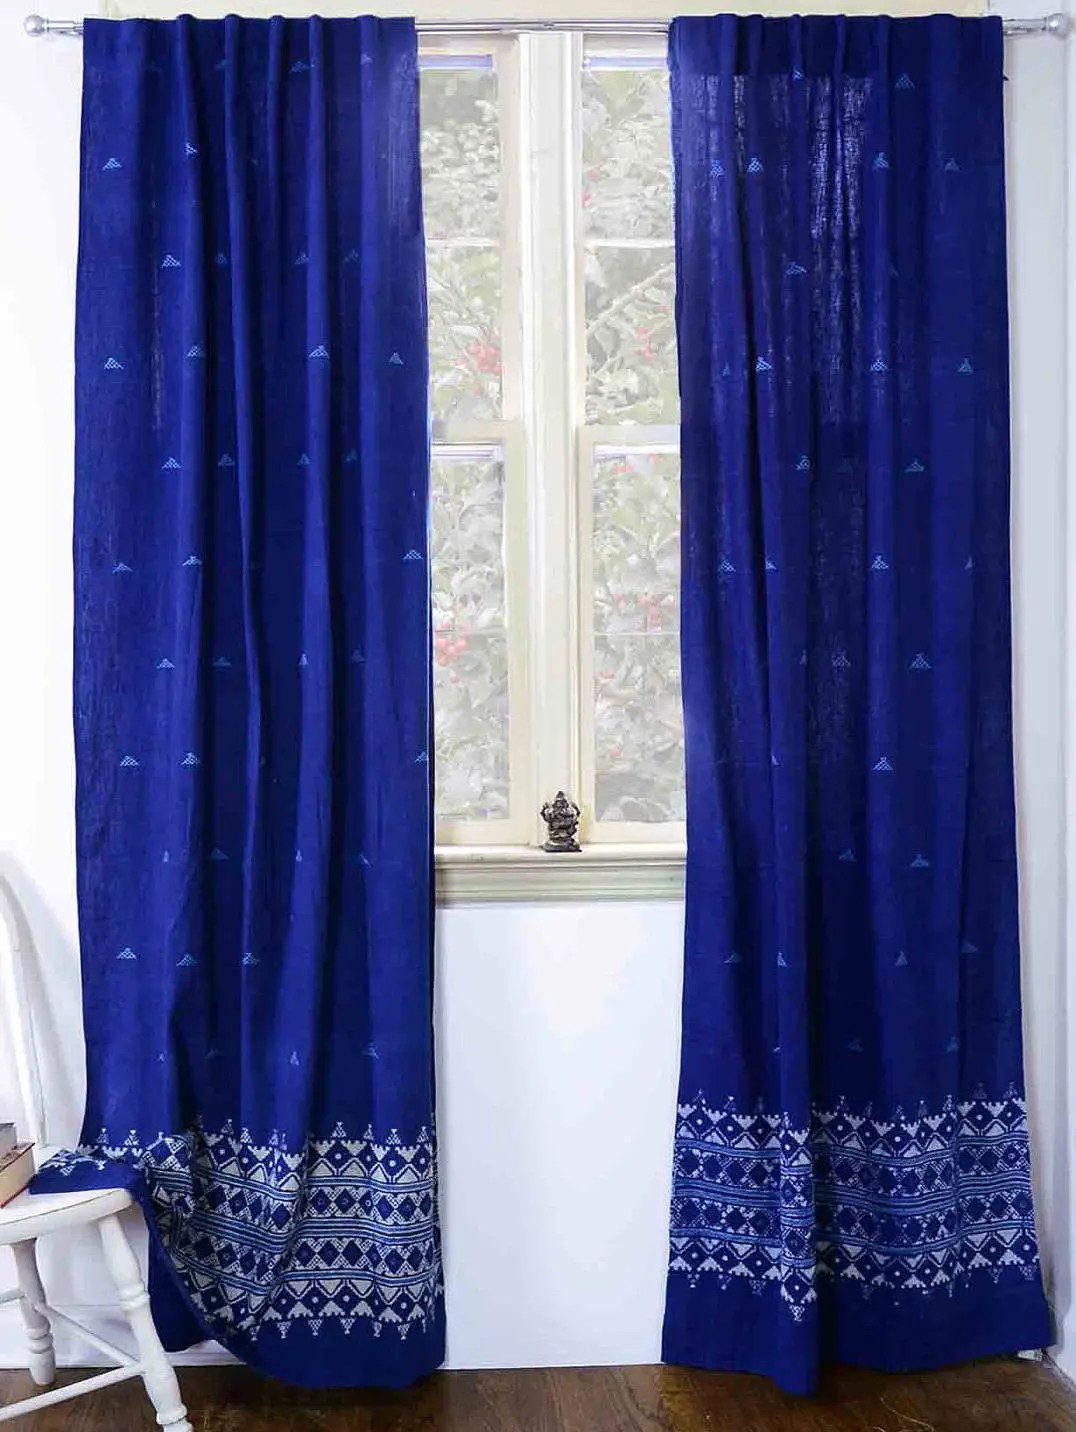 Bedroom Curtains Sale Indigo Curtains Sample Sale Window Curtain Indigo Blue Bedroom One Panel 40